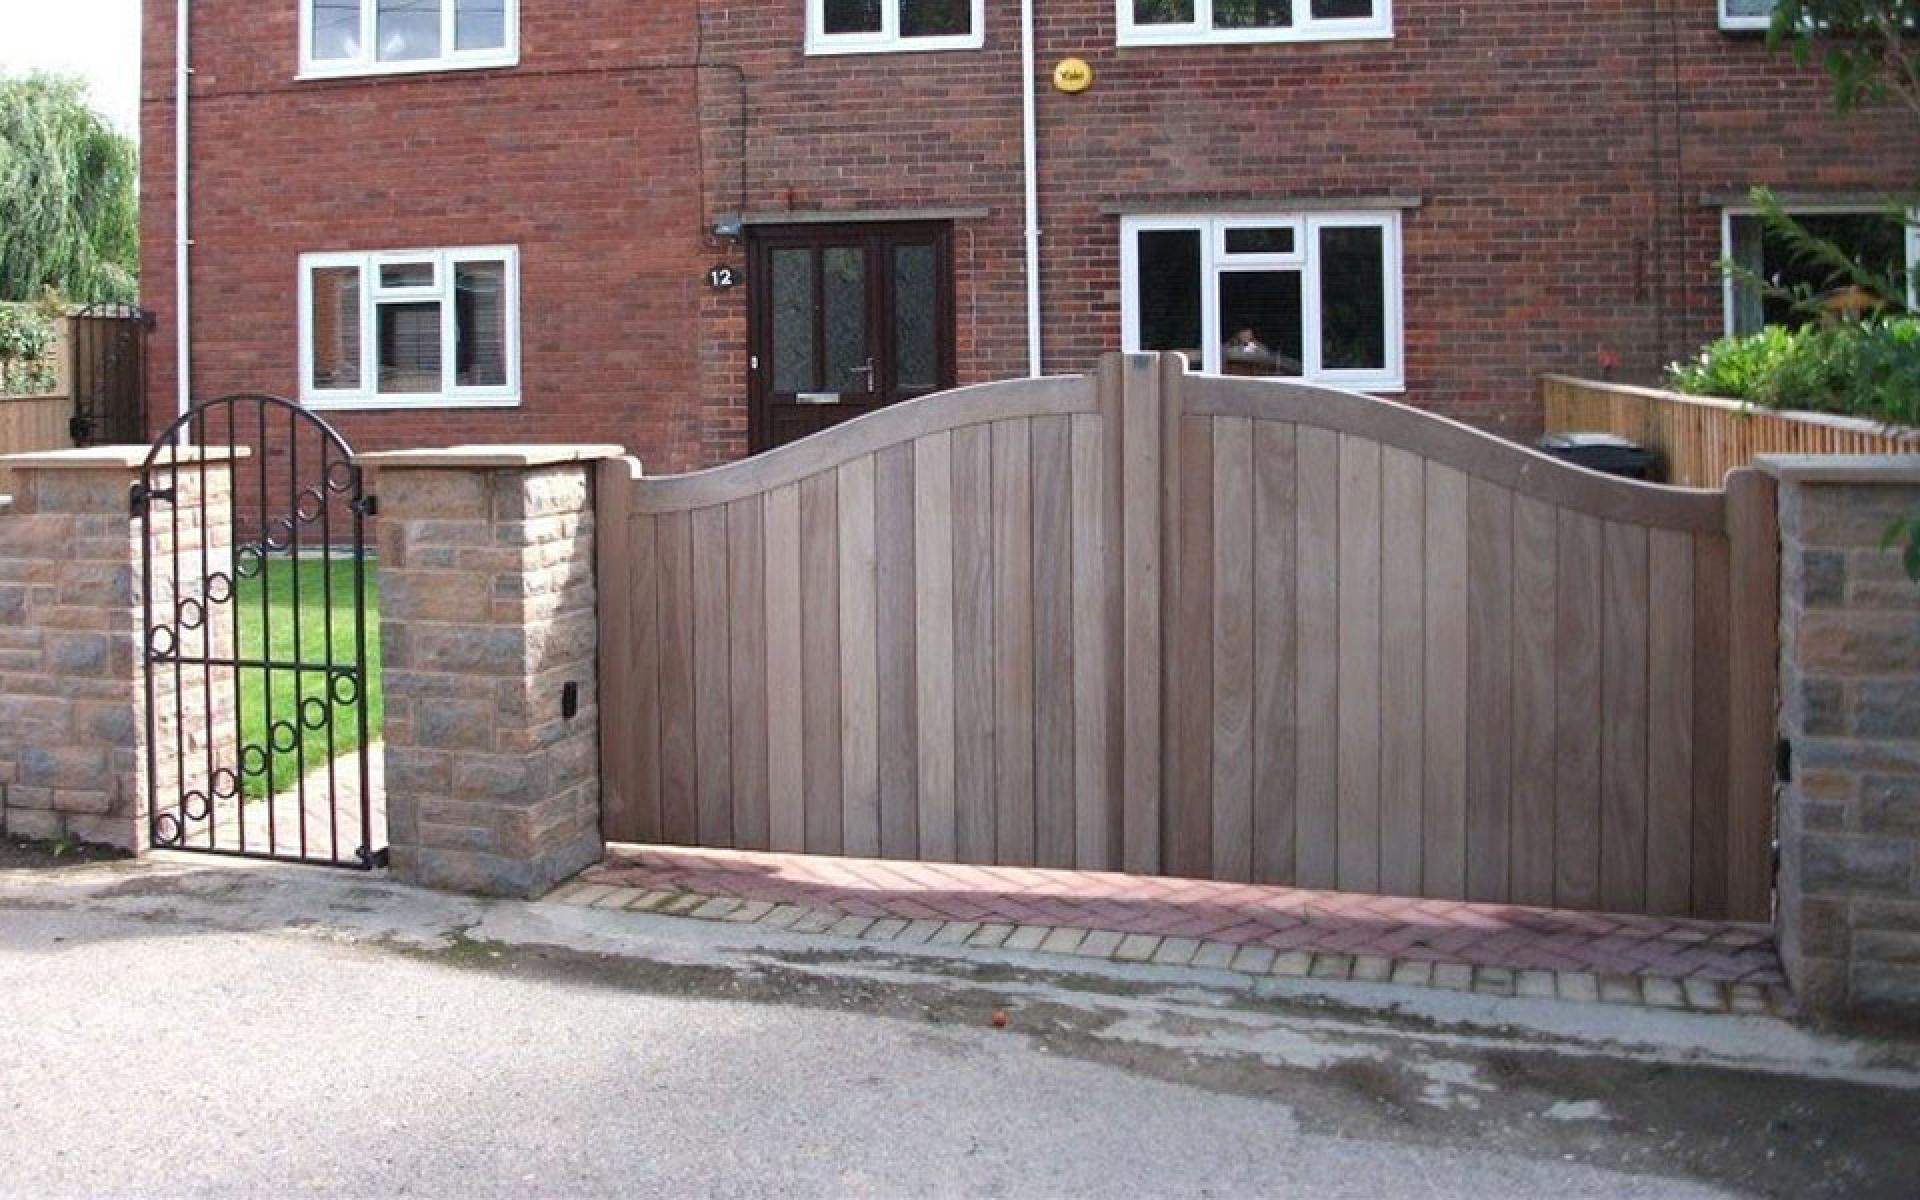 Prasha wooden gate (Courtesy of A1 Gates & Securities)